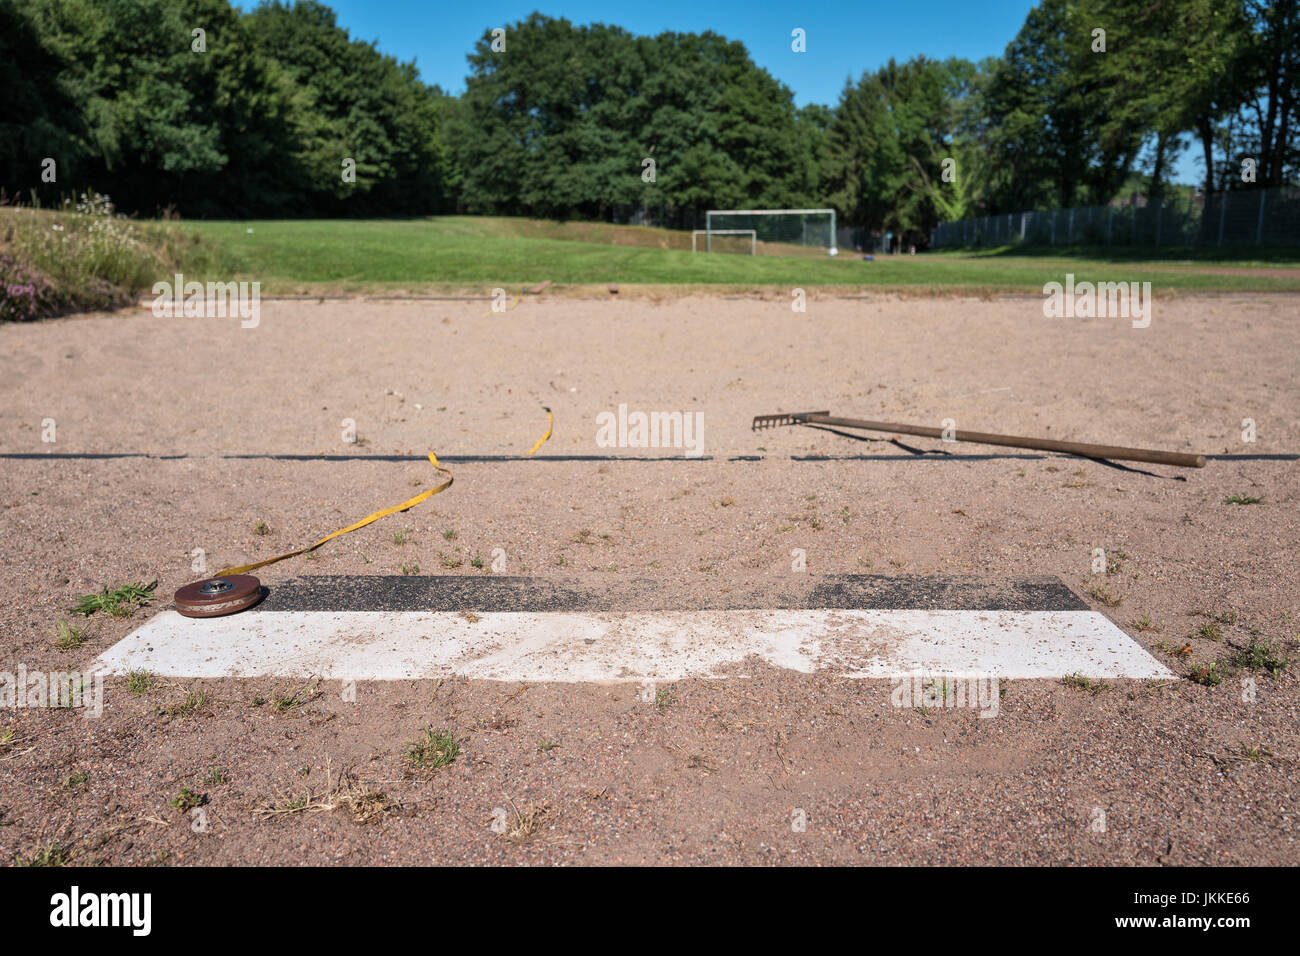 long jump box at sports ground Stock Photo